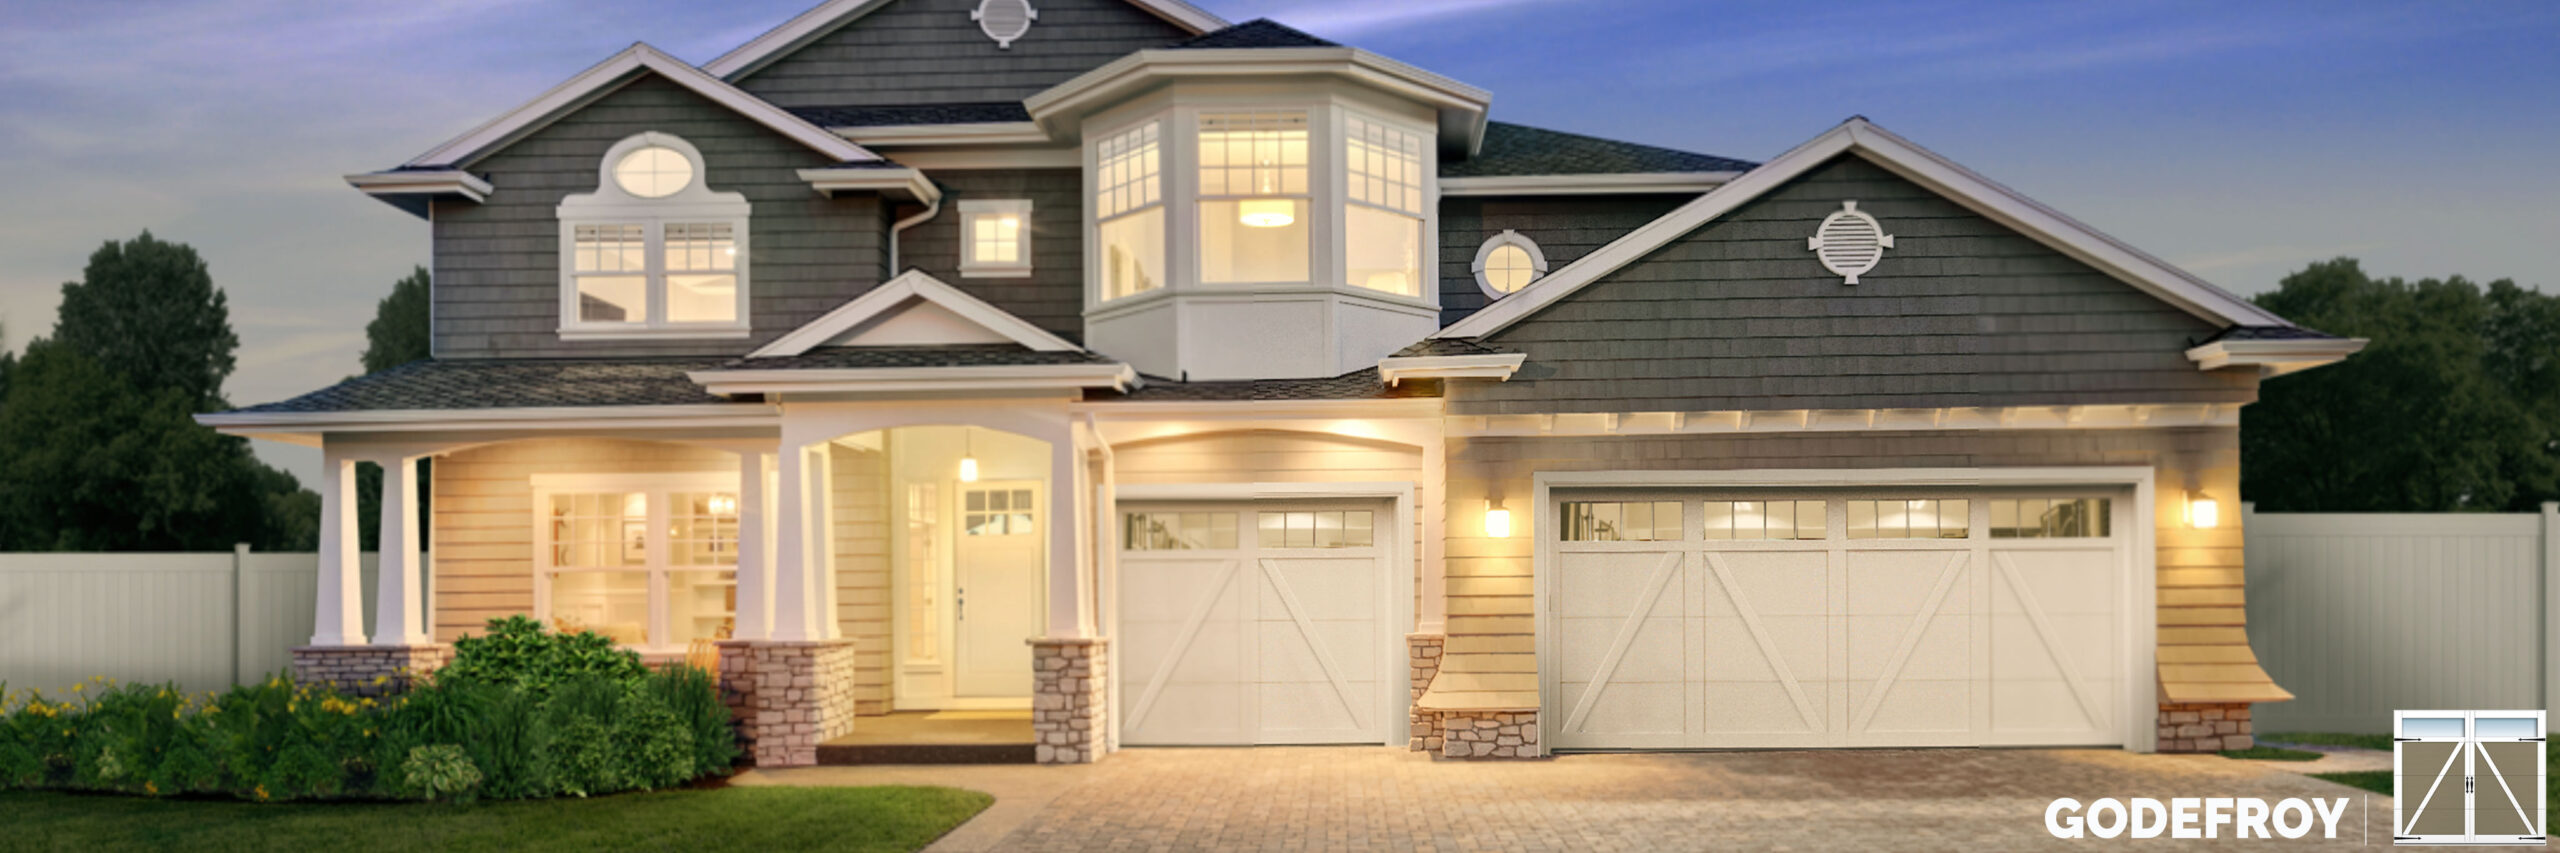 godefroy carriage house style garage door by garex scaled